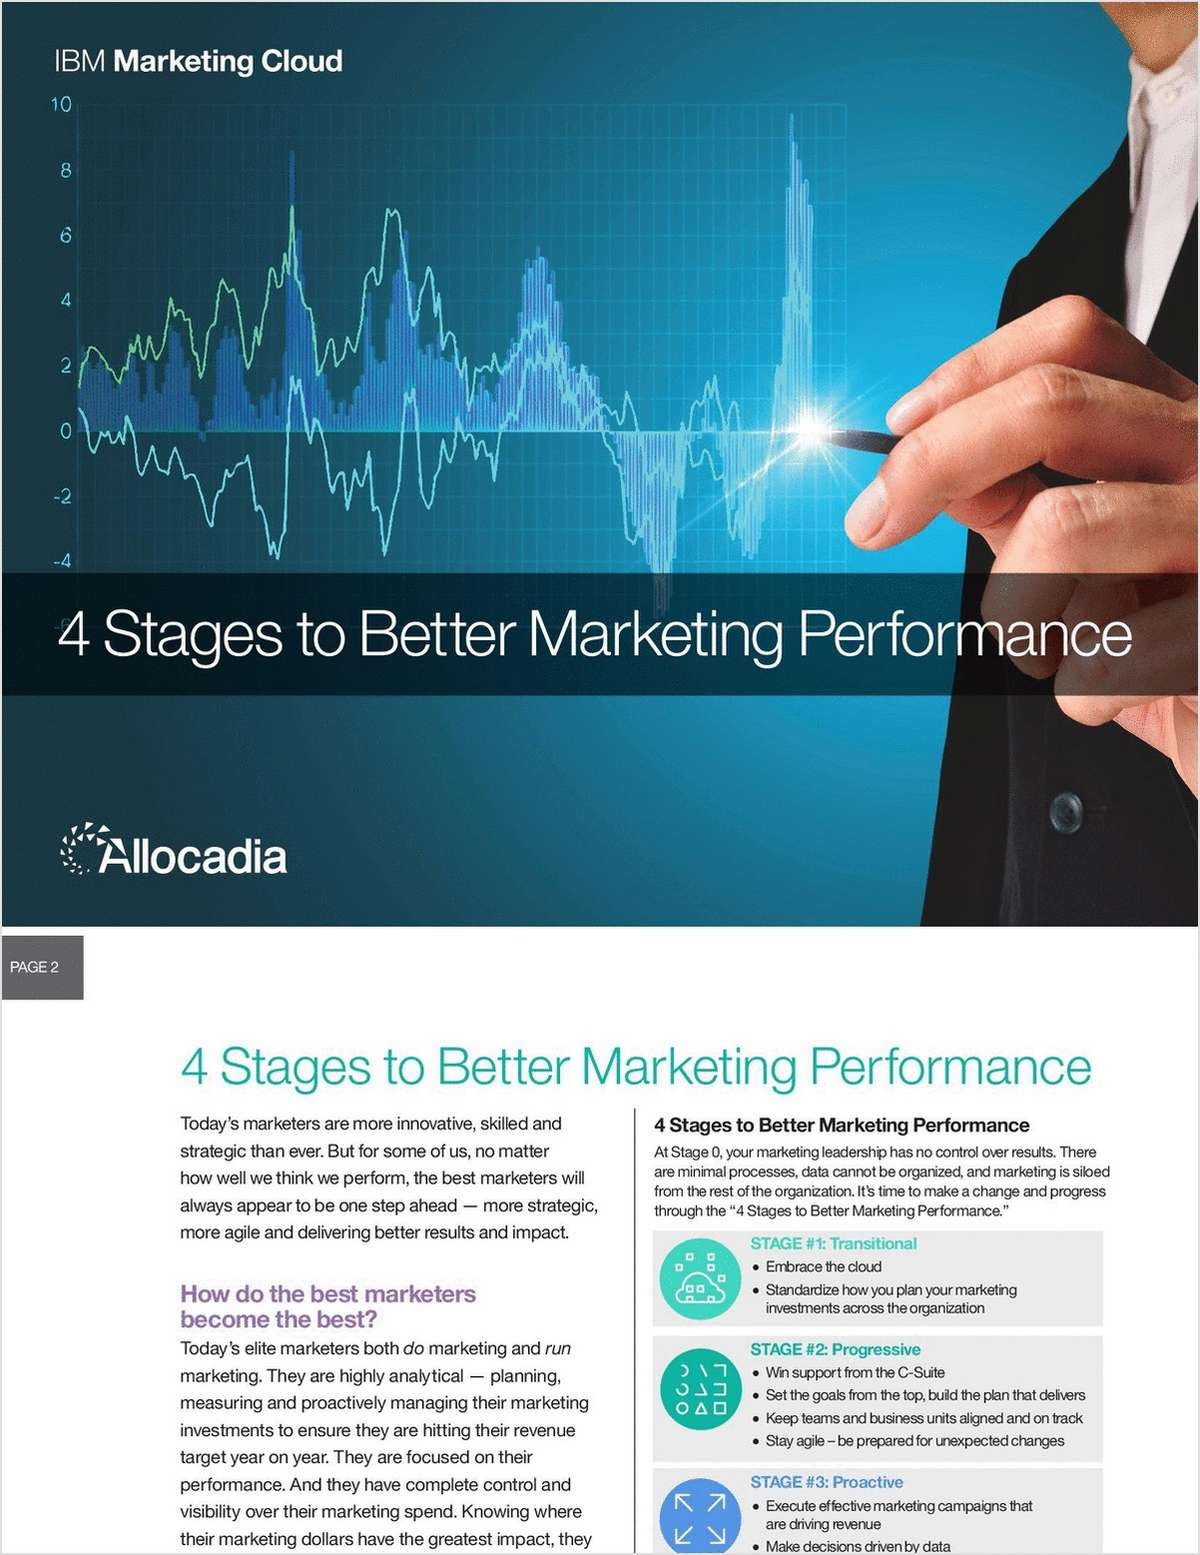 4 Stages to Better Marketing Performance